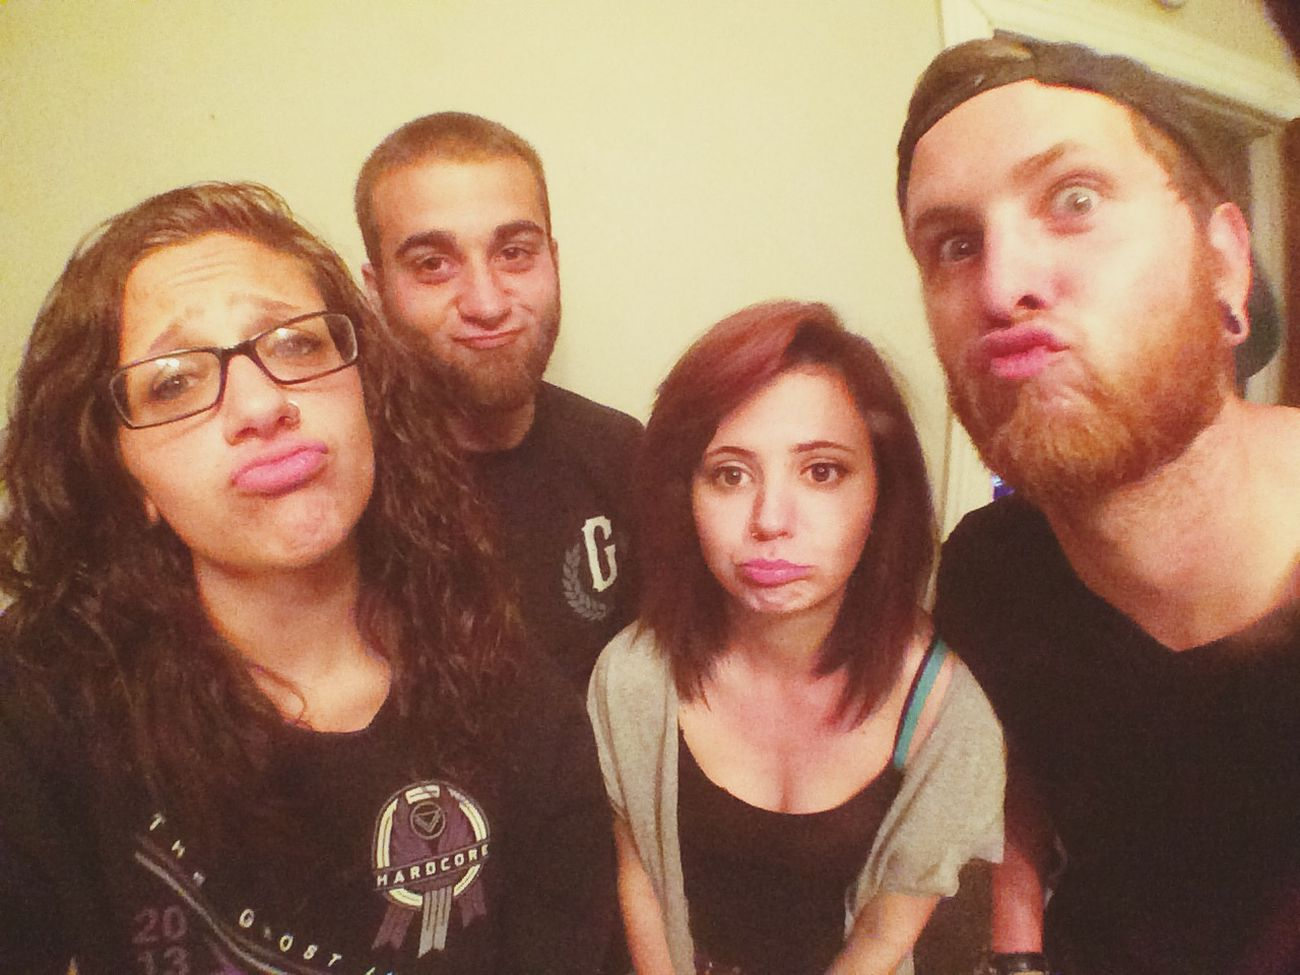 Duck Lips LMAO Sarcasm Goofballs Good People Good Time Friends